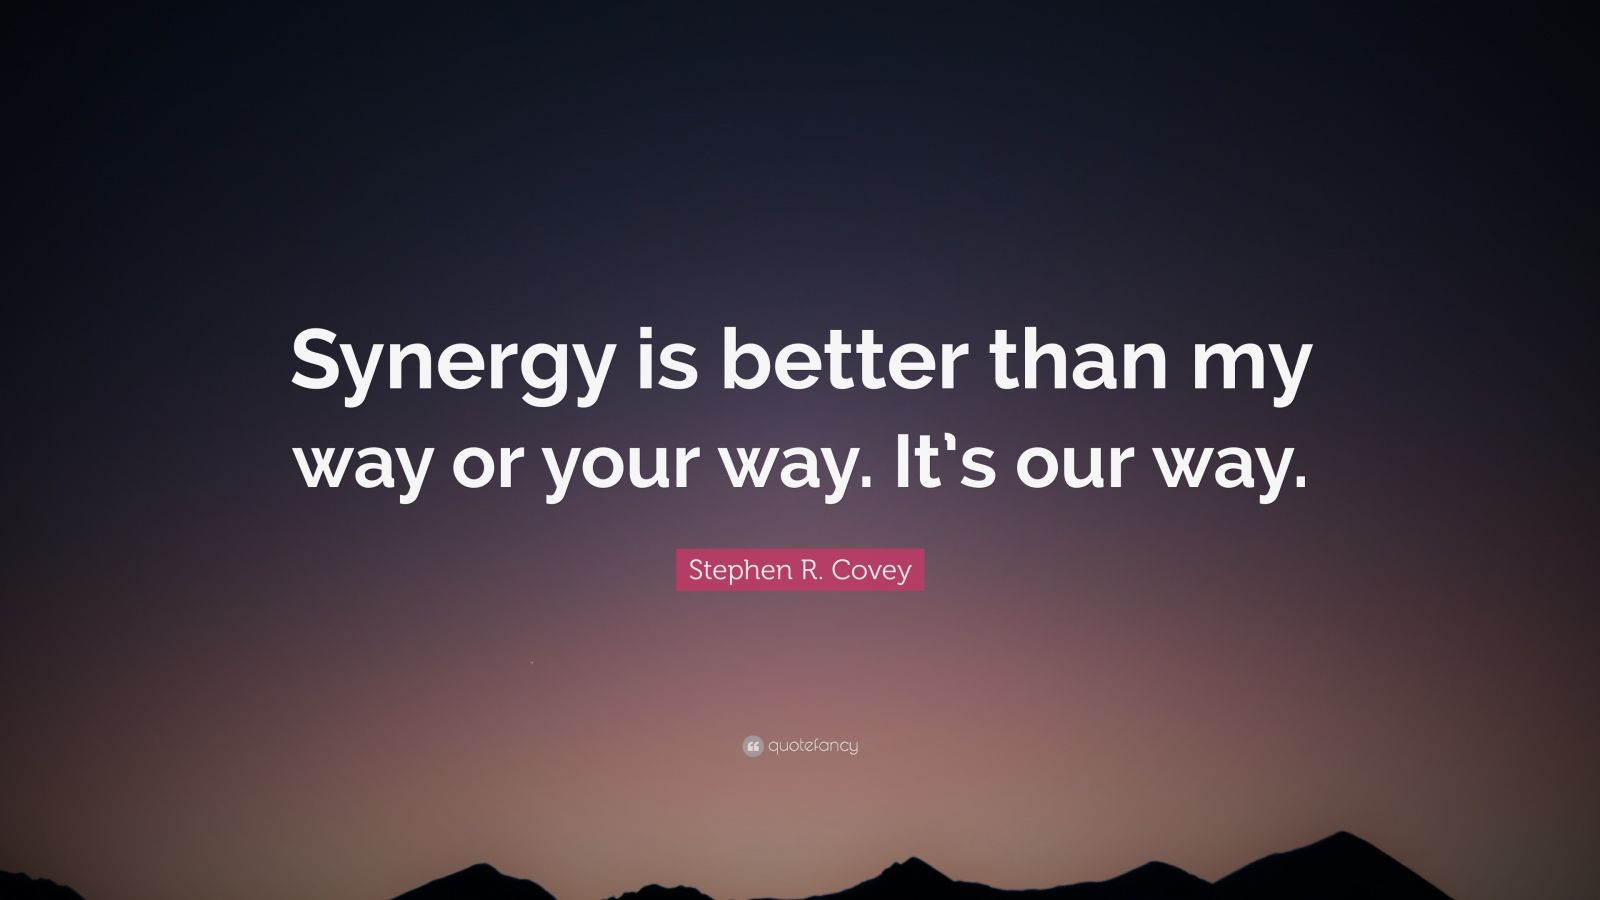 """Stephen R. Covey Quote: """"Synergy is better than my way or your way. It's our way."""""""